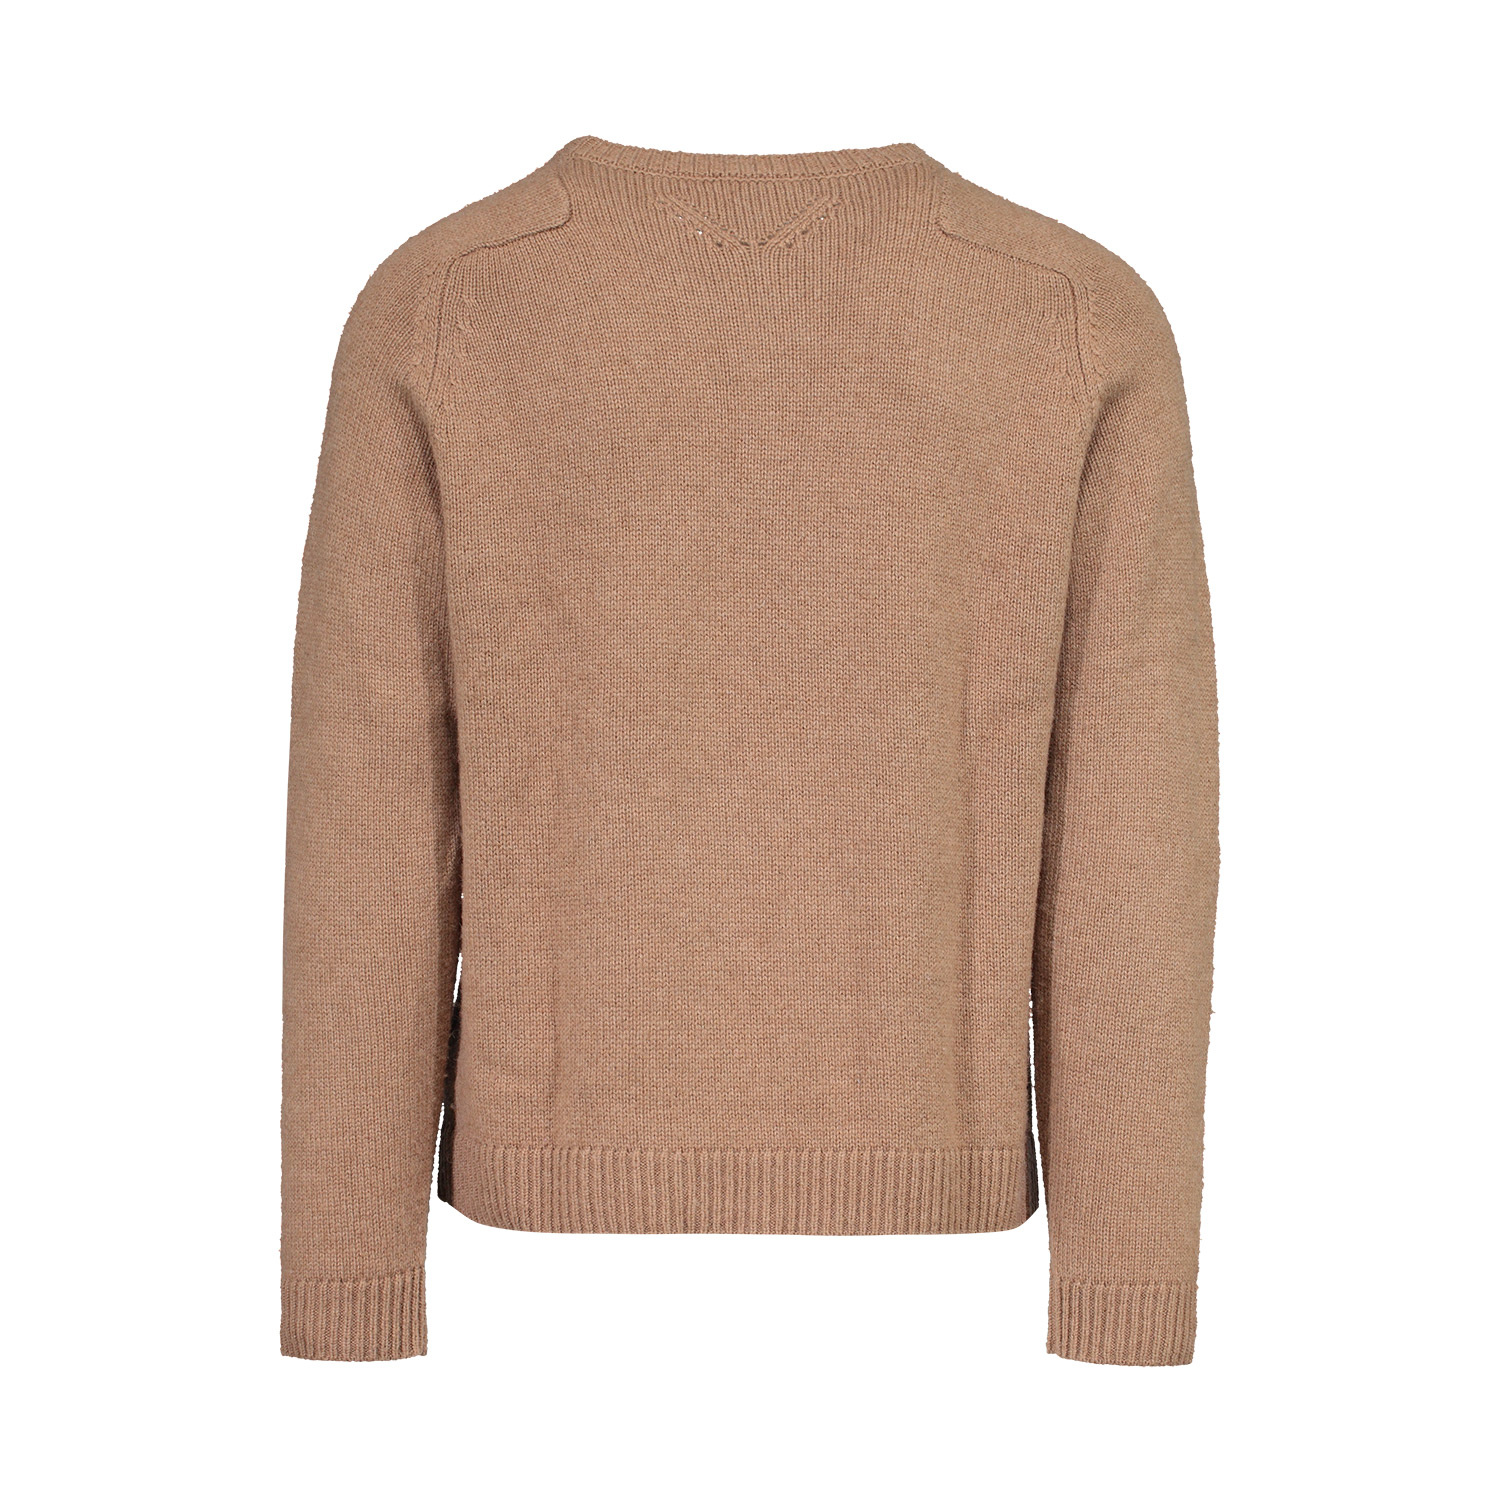 Valentino N/A - Valentino Tan Camel Hair Round Neck Sweater